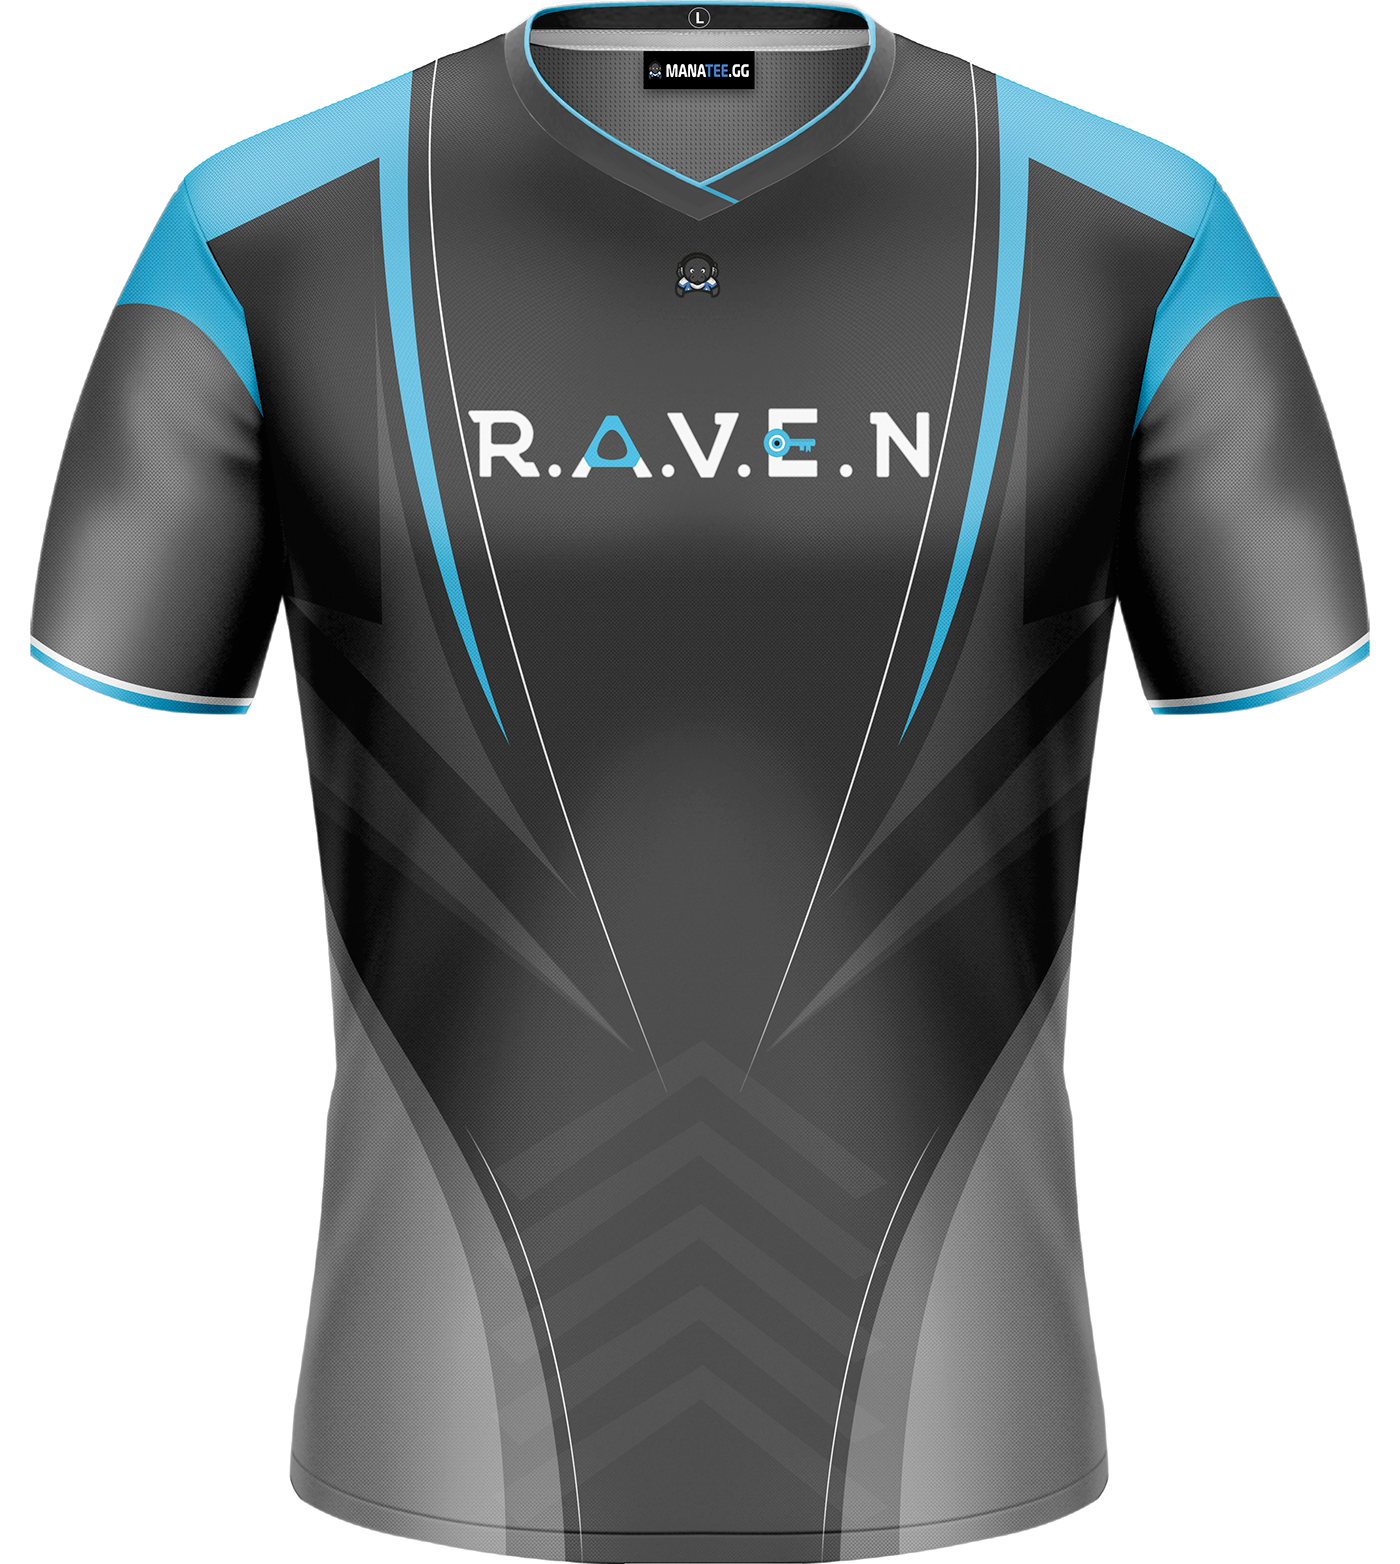 8f51db04 Raven Gaming Jersey concept on Behance | Sublimation | Sublime shirt ...